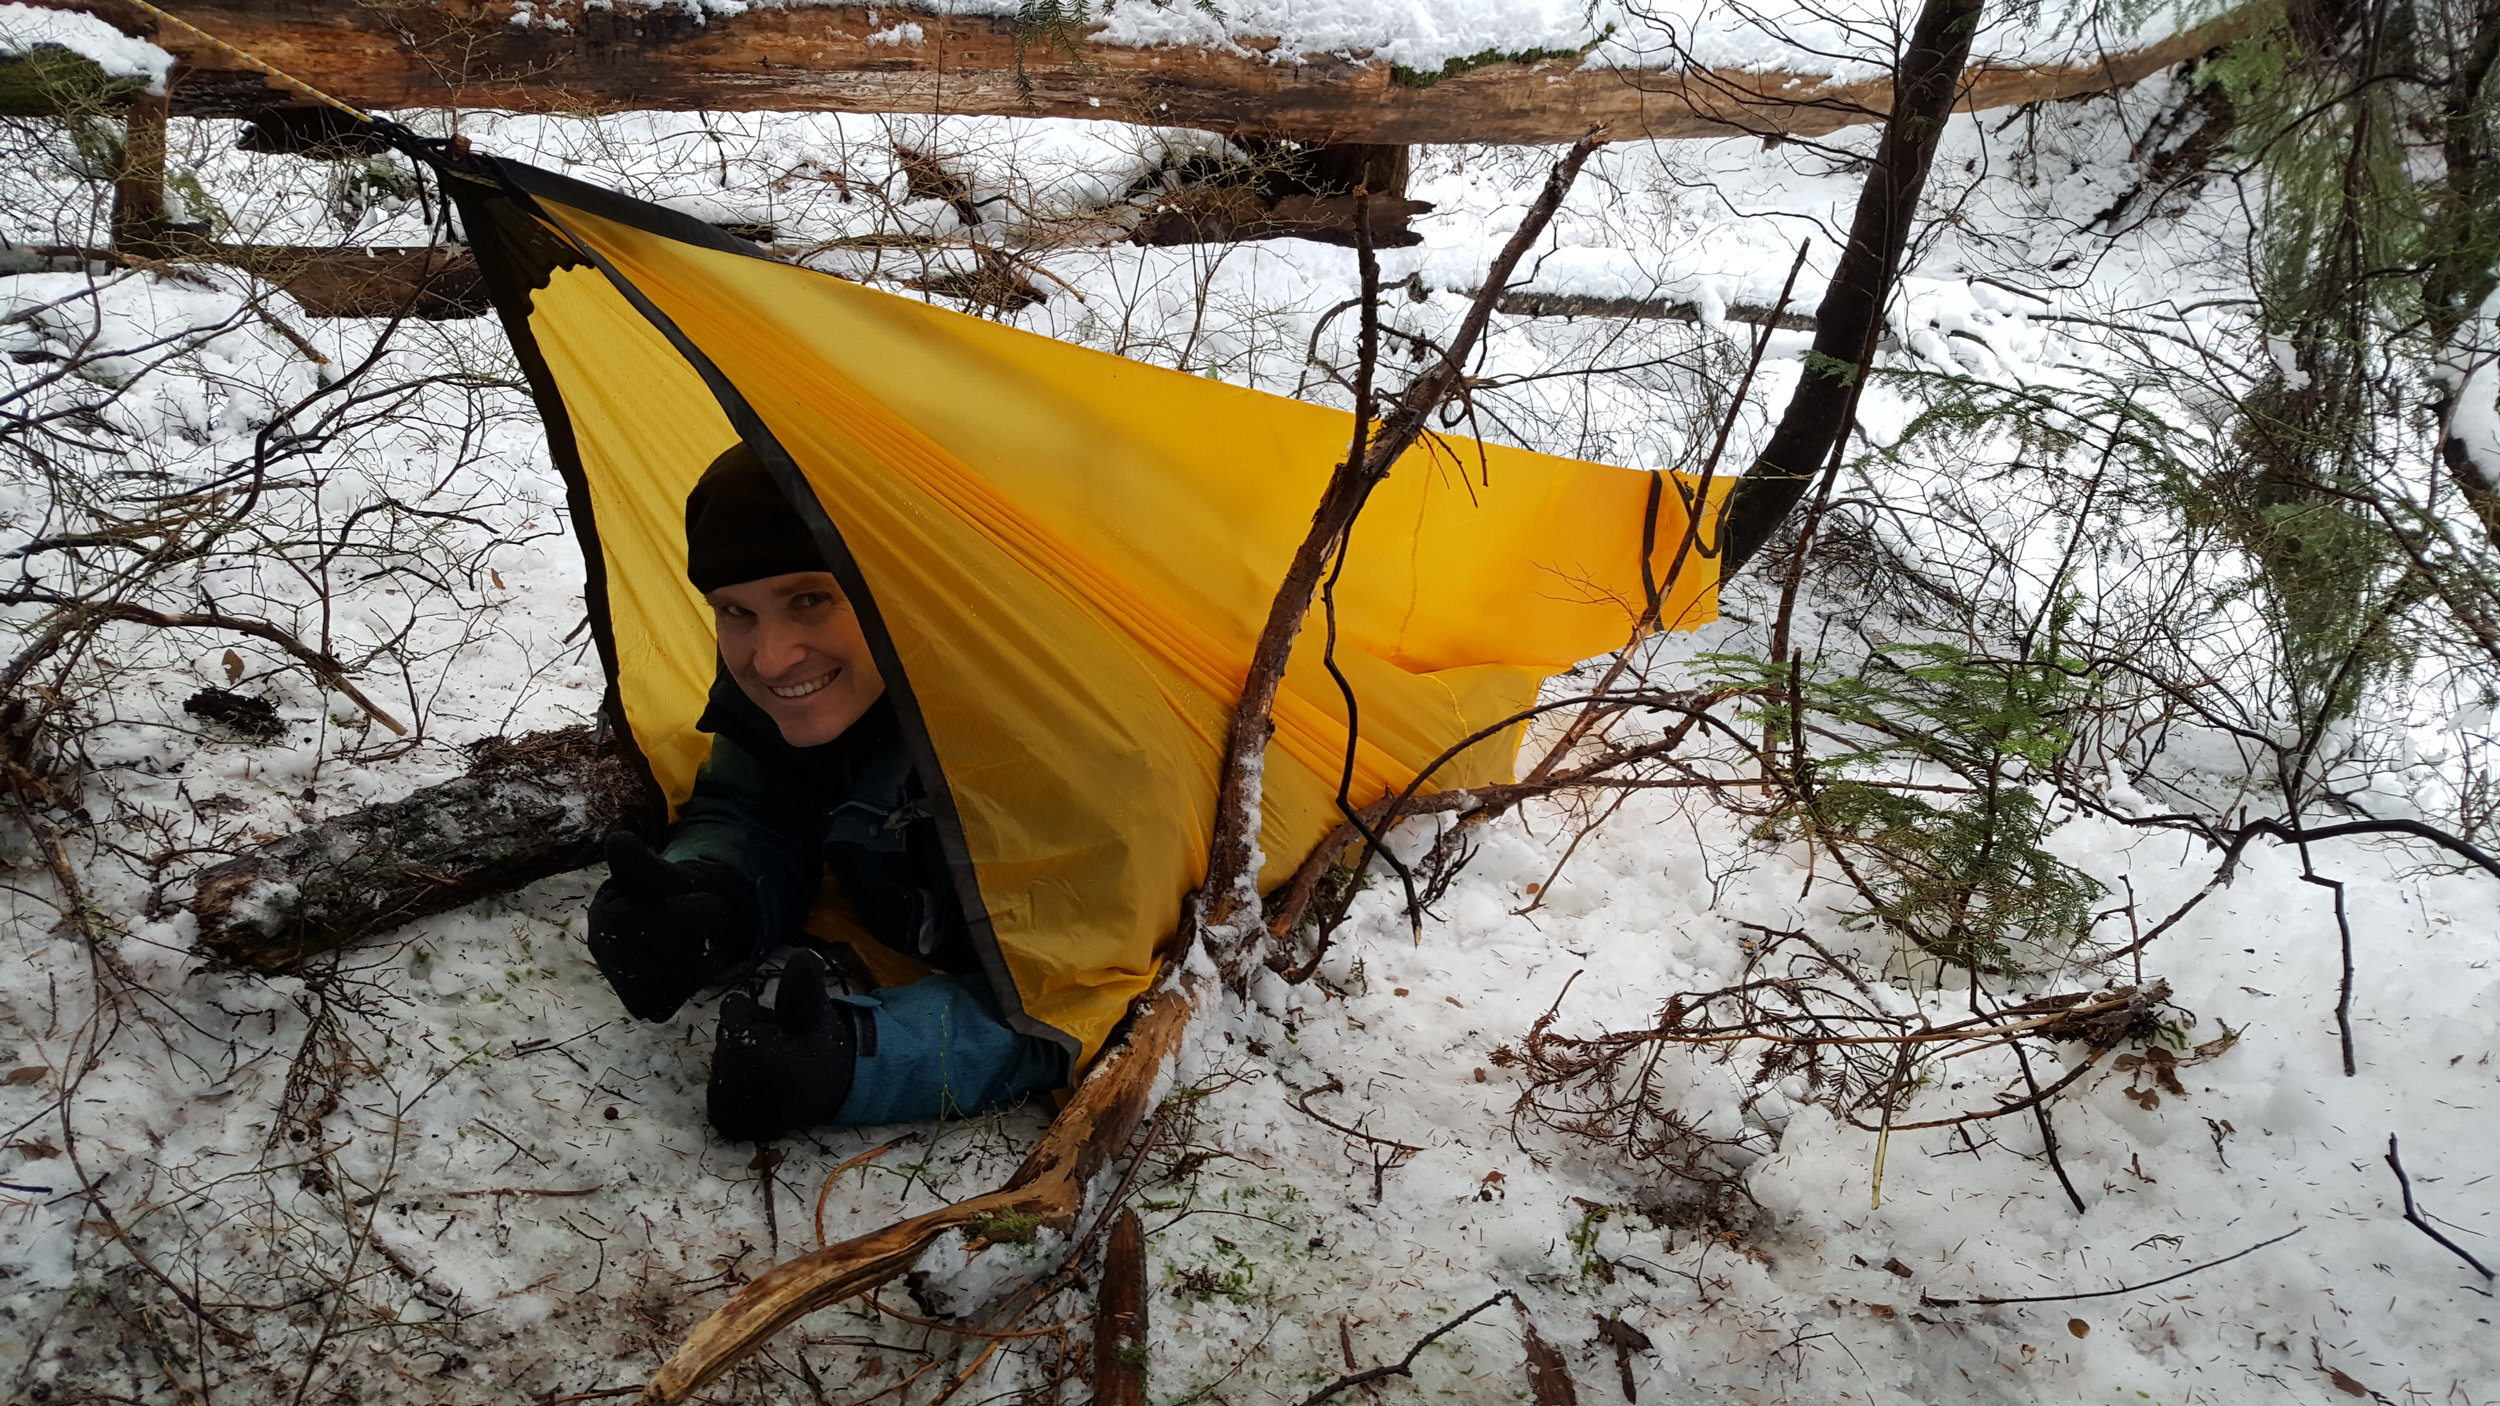 It would be nice to have some padding under me, but my mighty shelter will keep me dry. A bit of snow banked around the sides, and a carefully tended fire near the opening - taking care not to let sparks near my tarp or smoke myself out - will make my night easier.